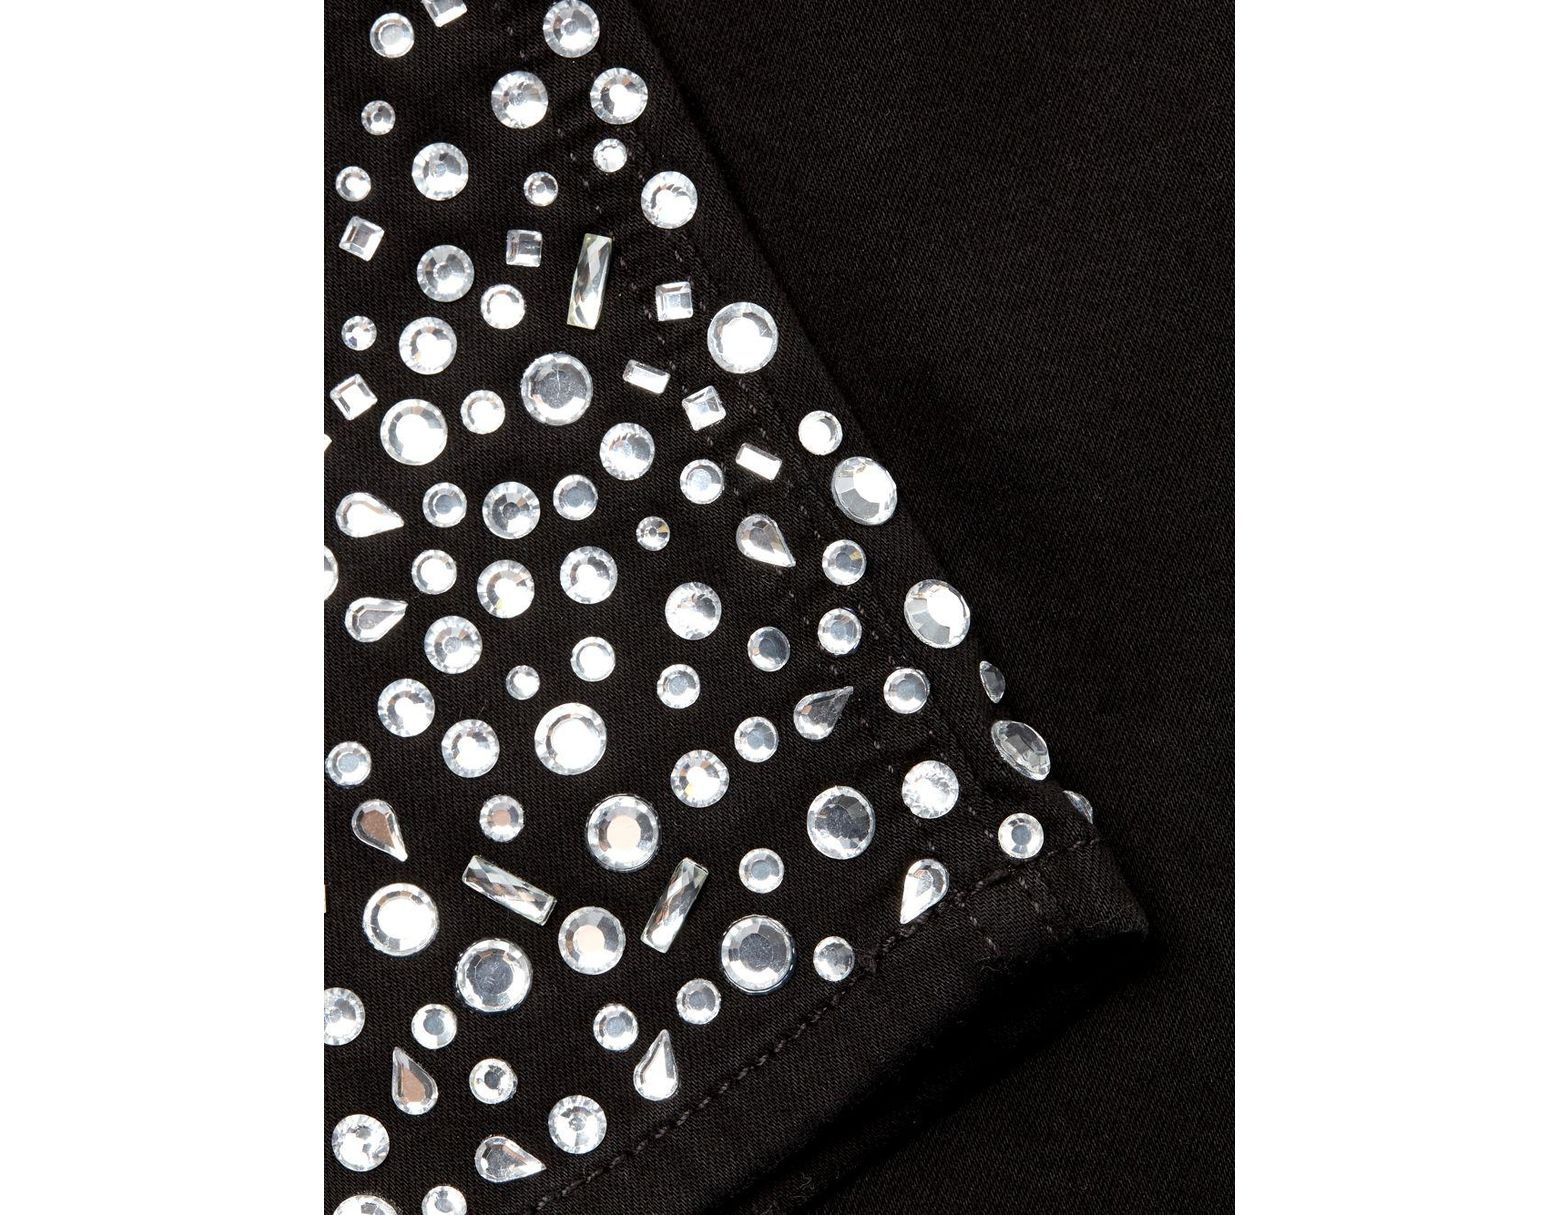 b19b3a53cc7d 7 For All Mankind Rhinestone Embellished Skinny Jeans in Black - Save 28% -  Lyst